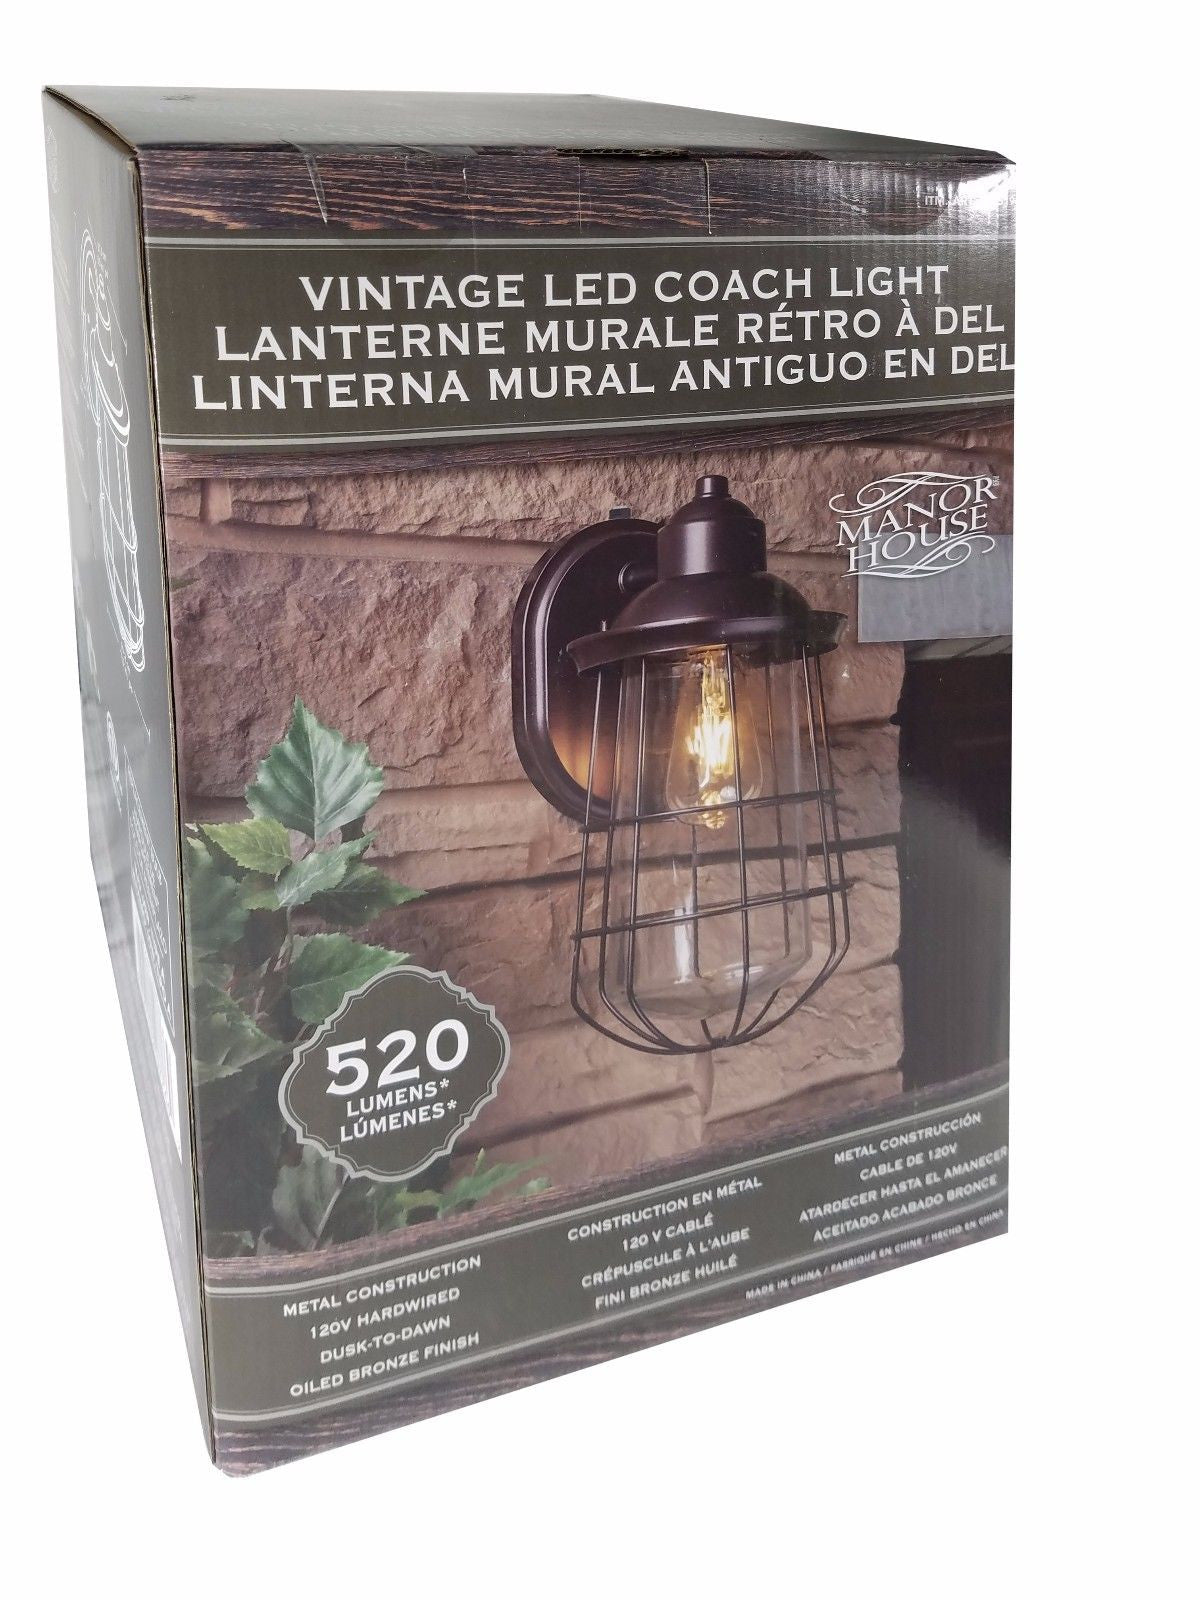 Manor House Vintage LED Coach Light Metal Construction Bronze Finish 520 Lumens